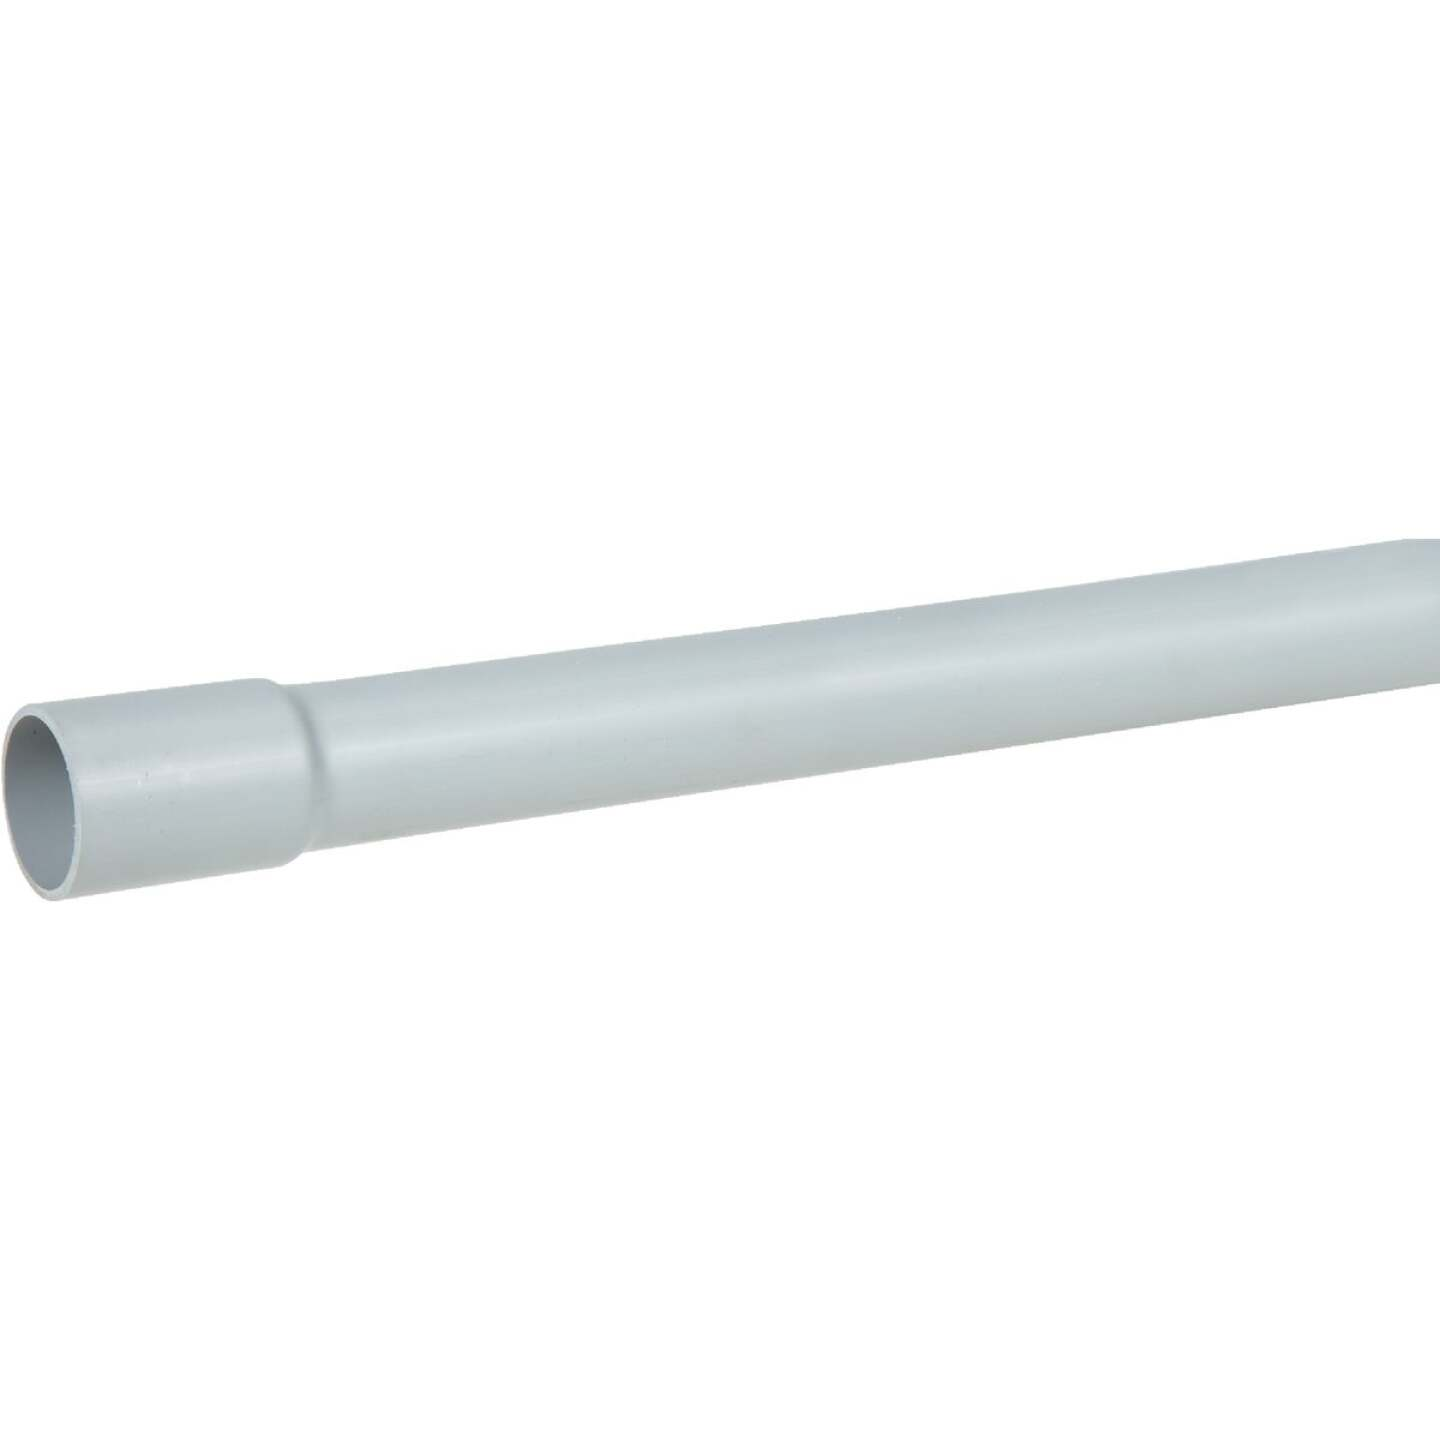 Allied 1-1/4 In. x 10 Ft. Schedule 40 PVC Conduit Image 1